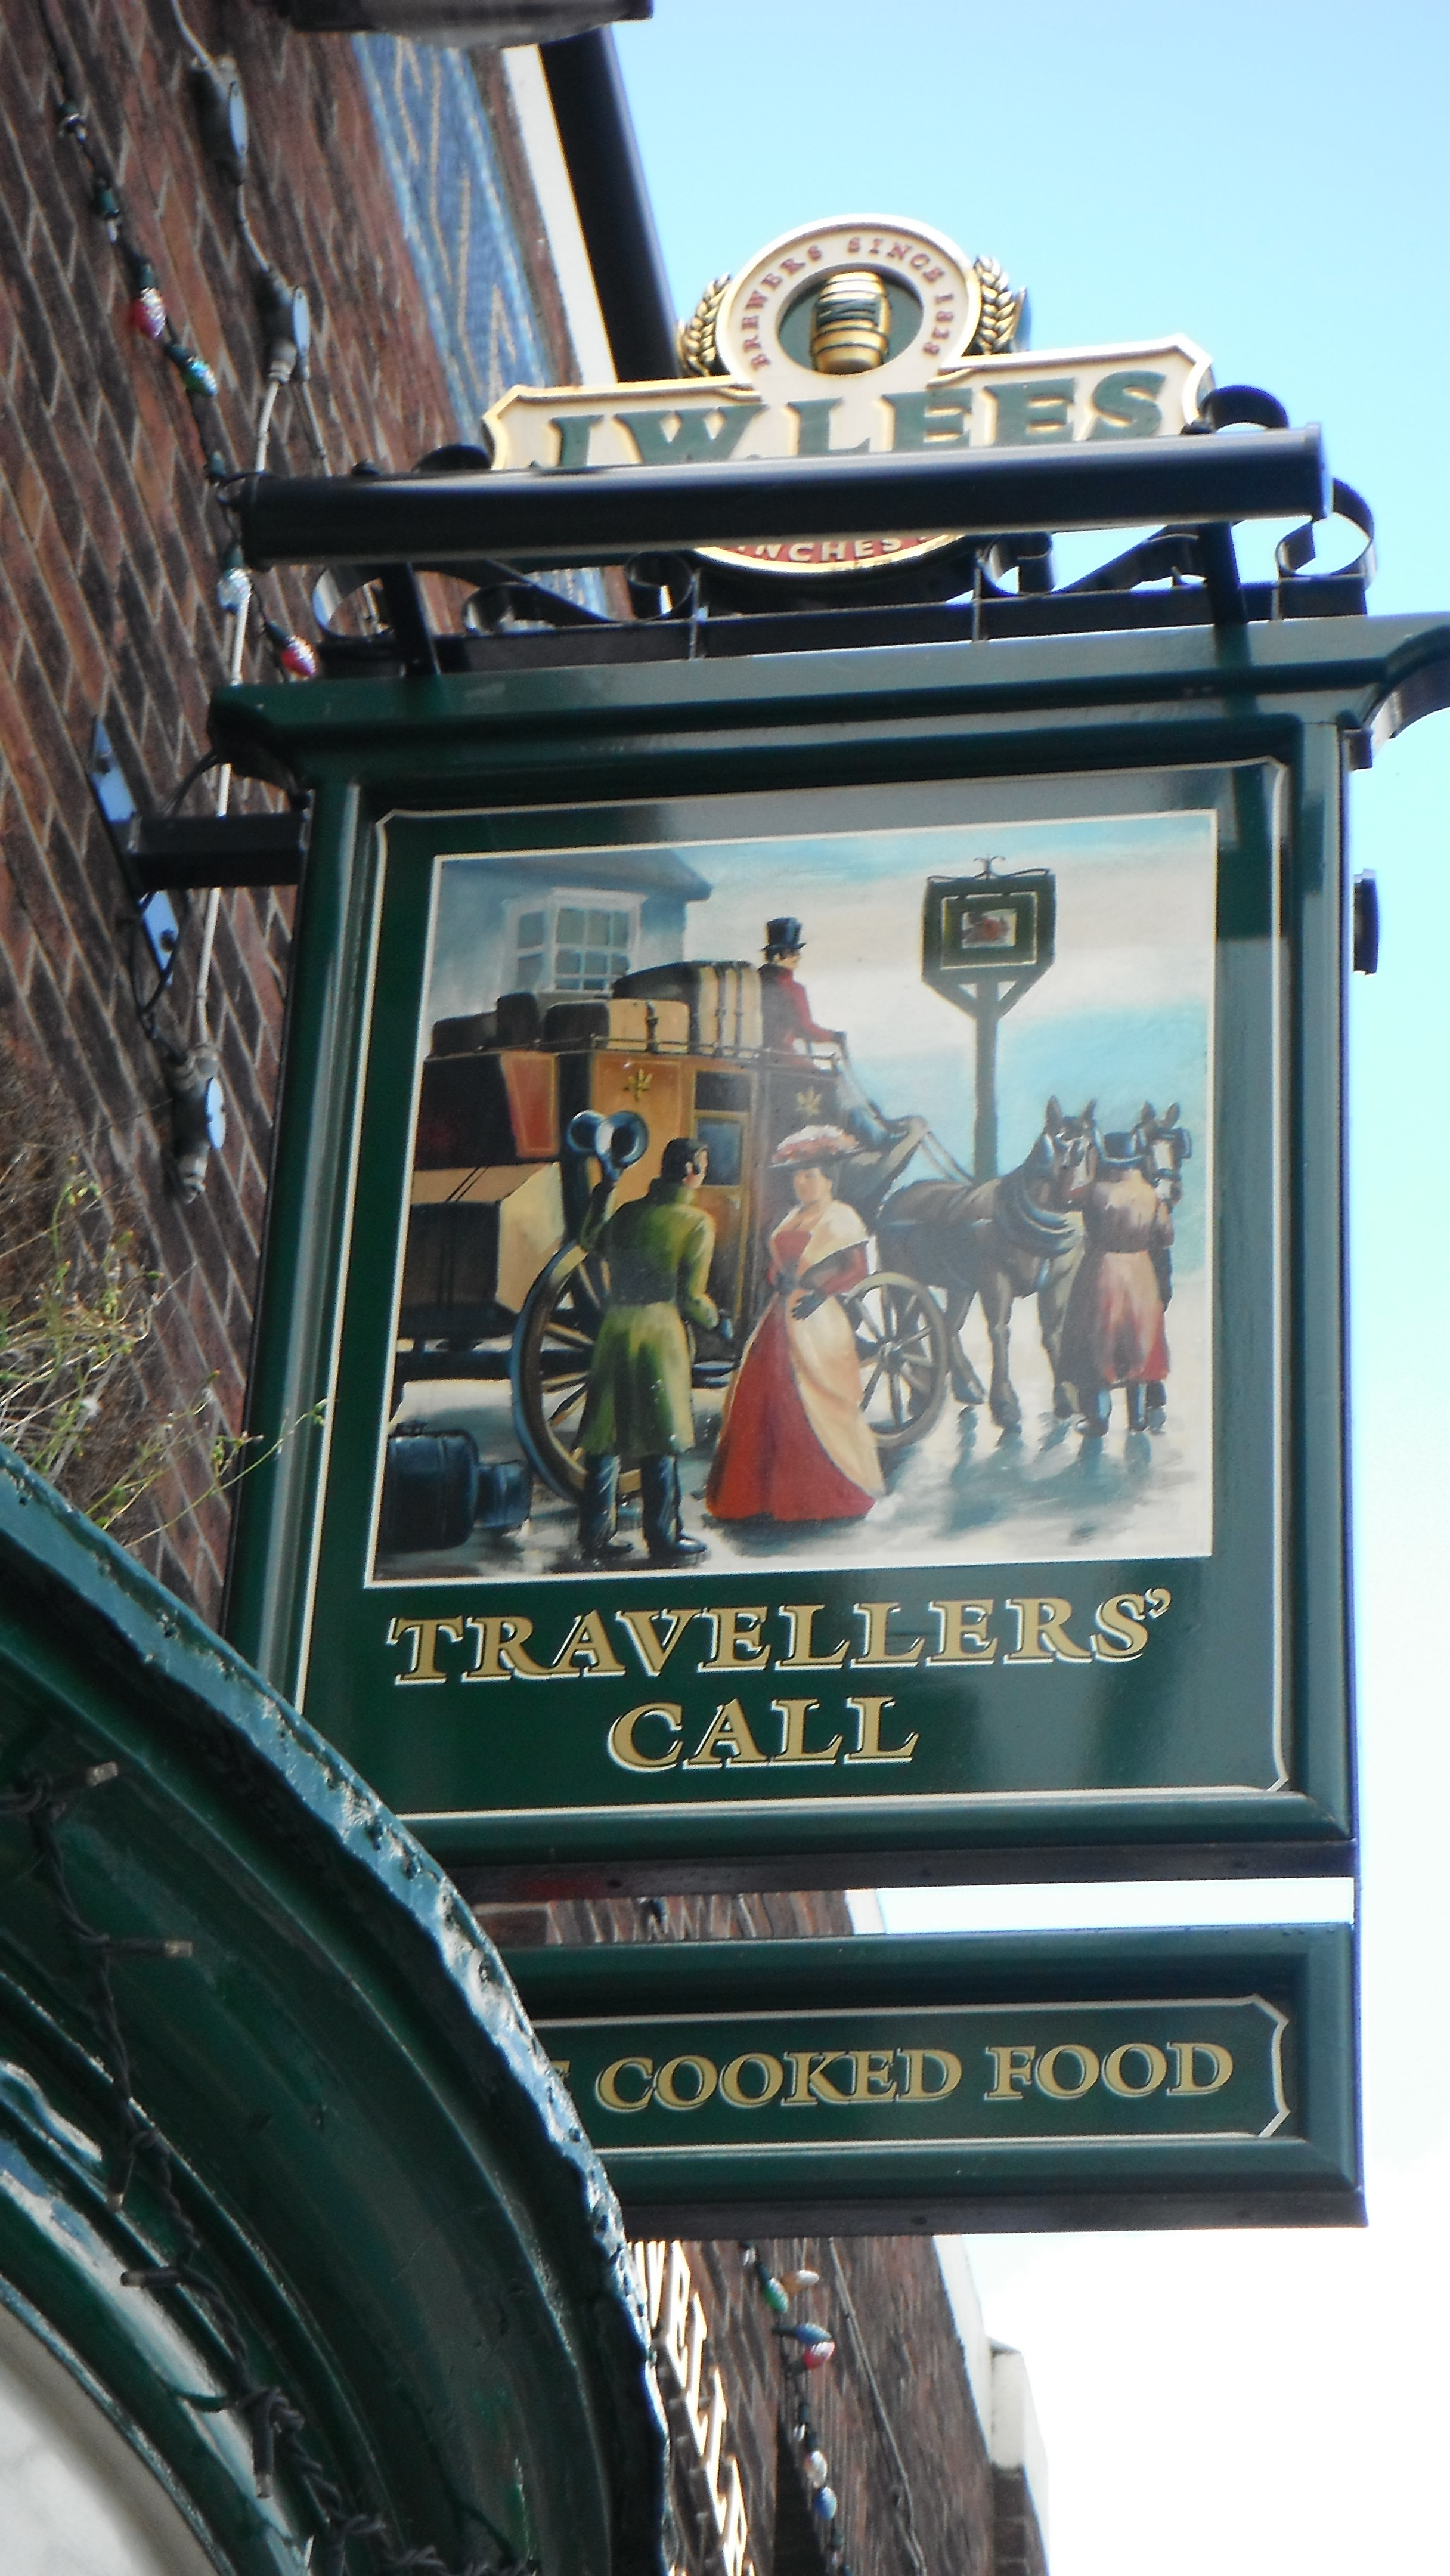 Photo taken by me - The Traveller's Call Bredbury